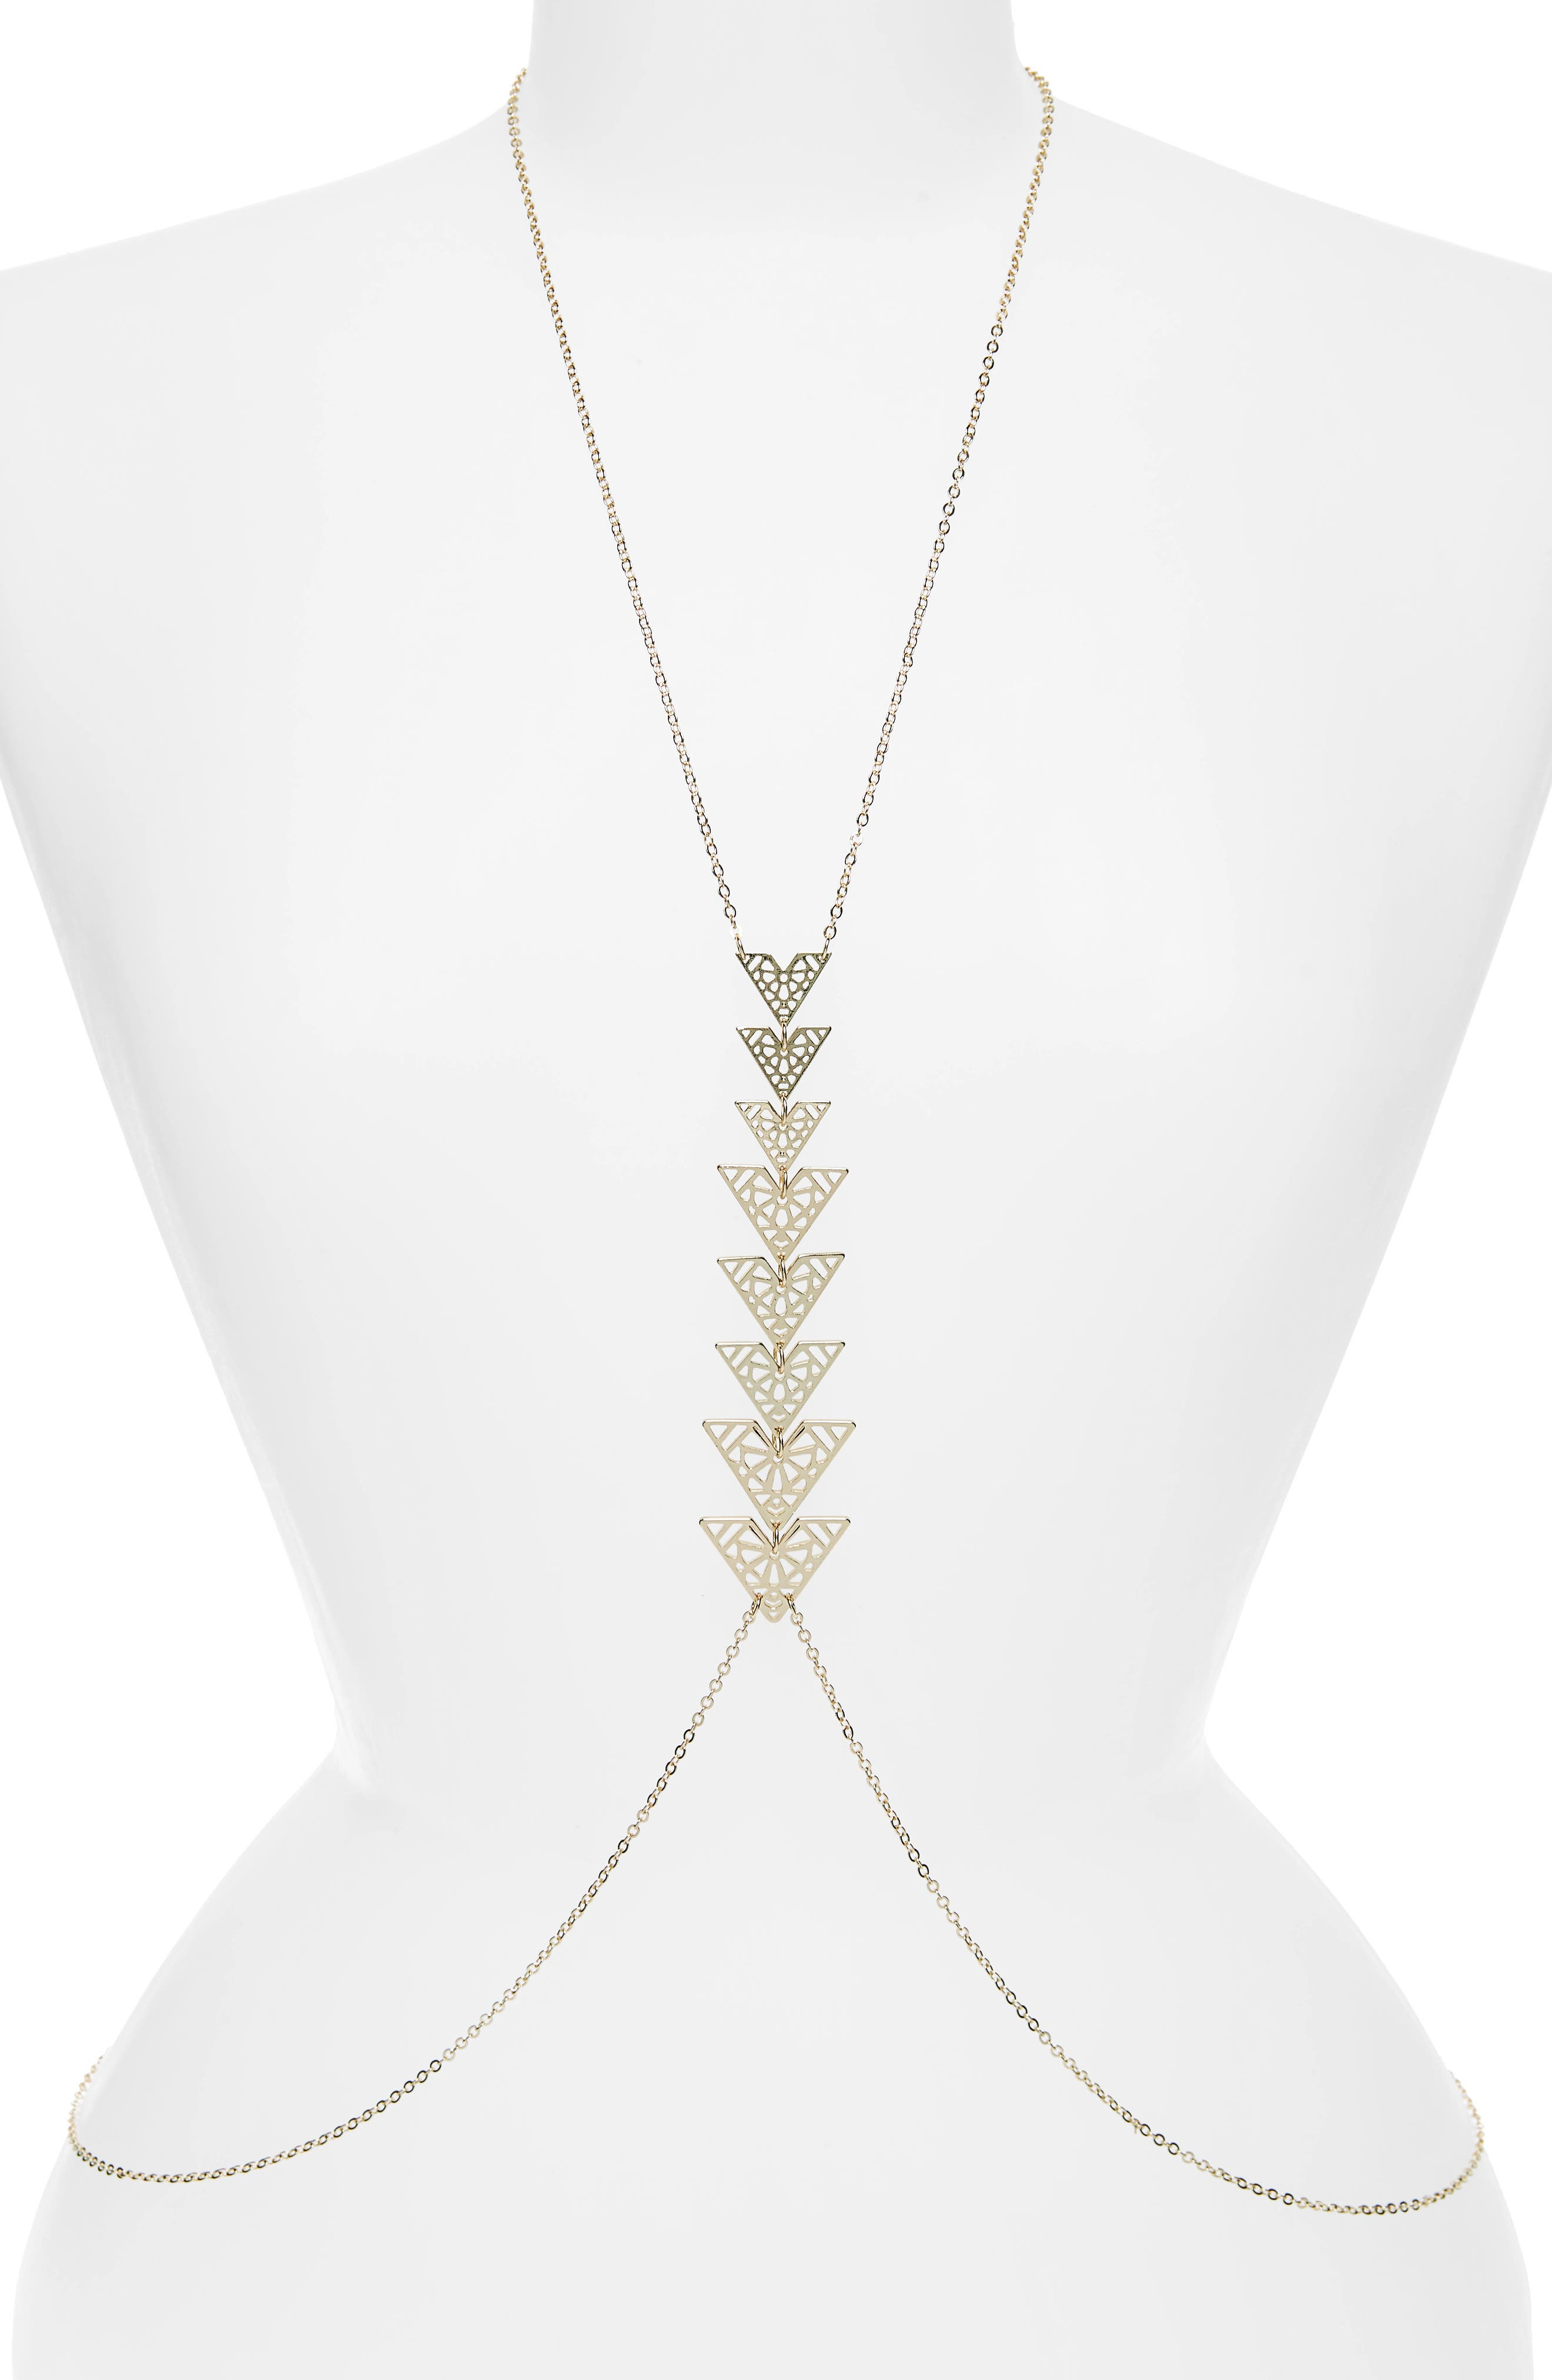 Alternate Image 1 Selected - BP. Triangle Body Chain